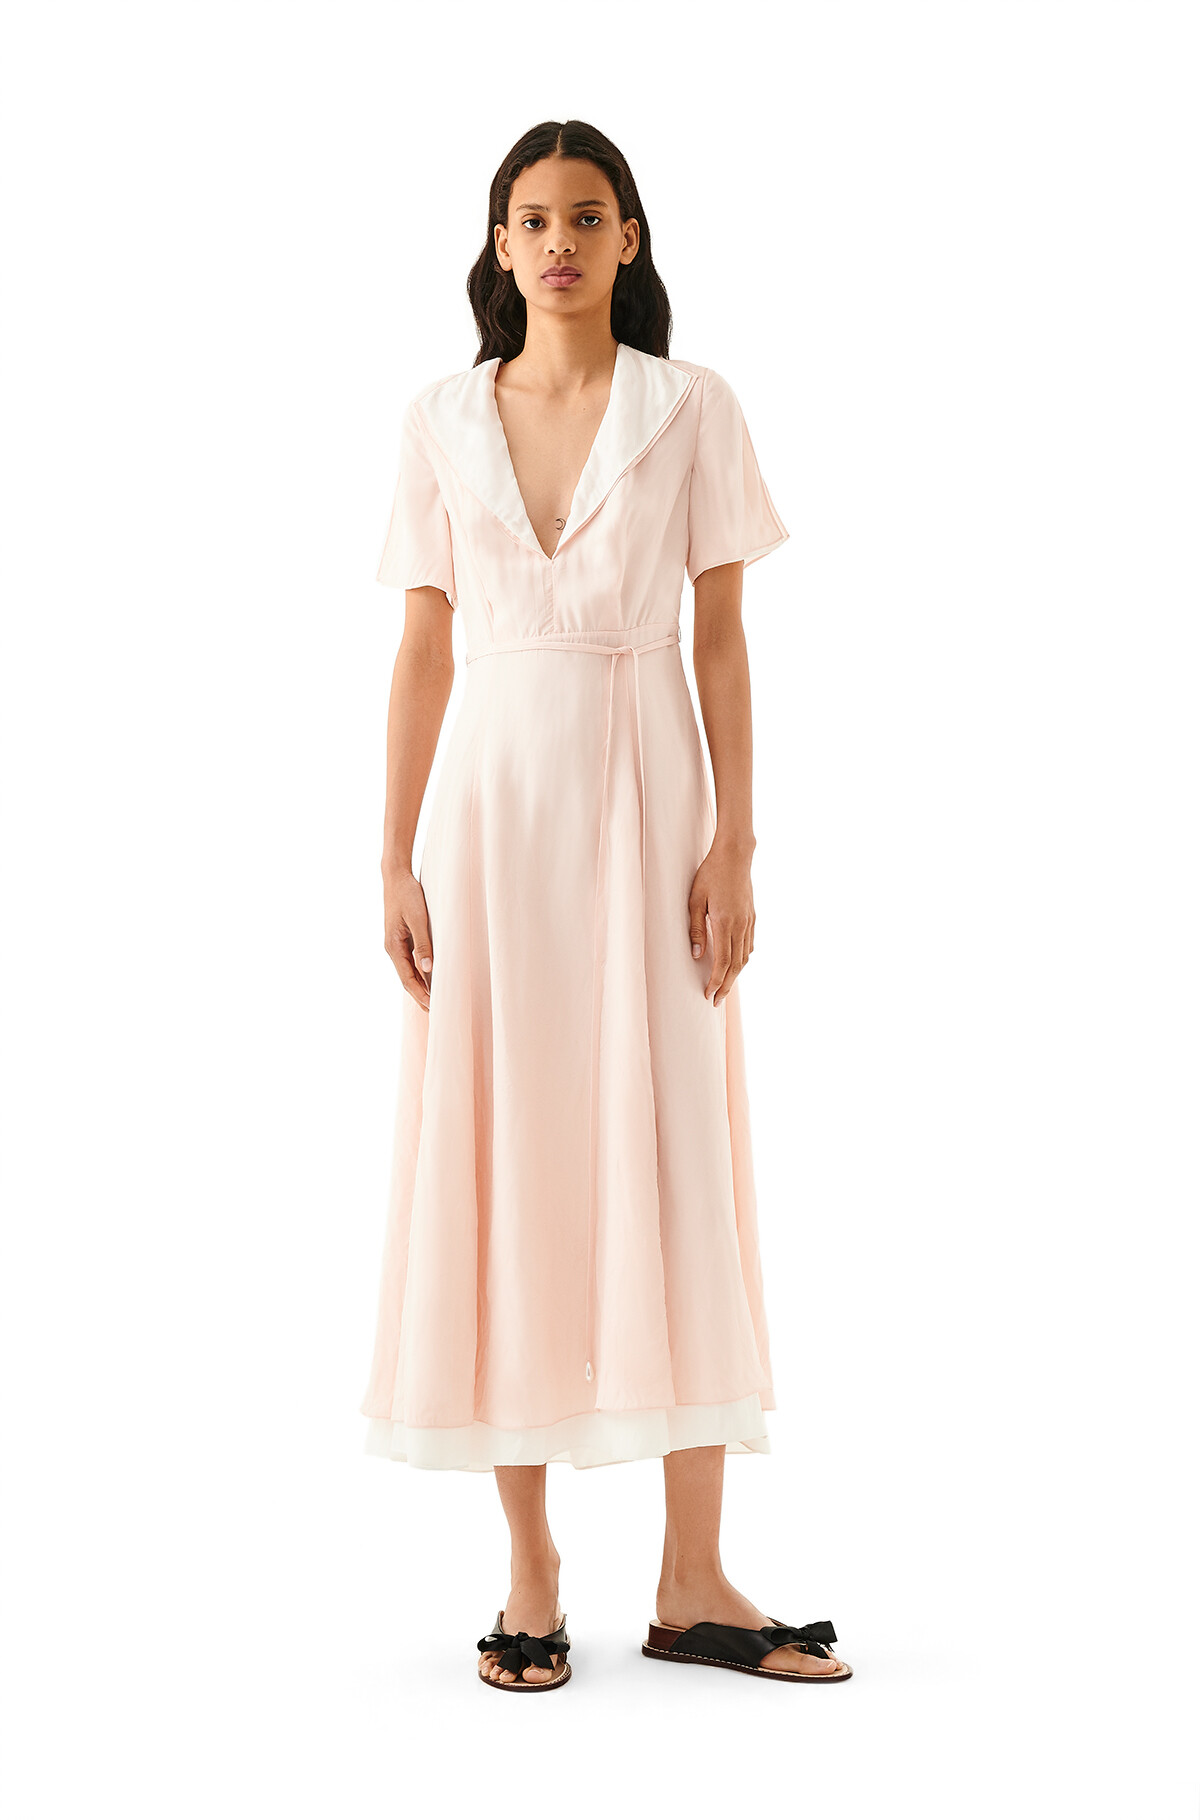 LOEWE Cut Sleeve Dress Pink/White front